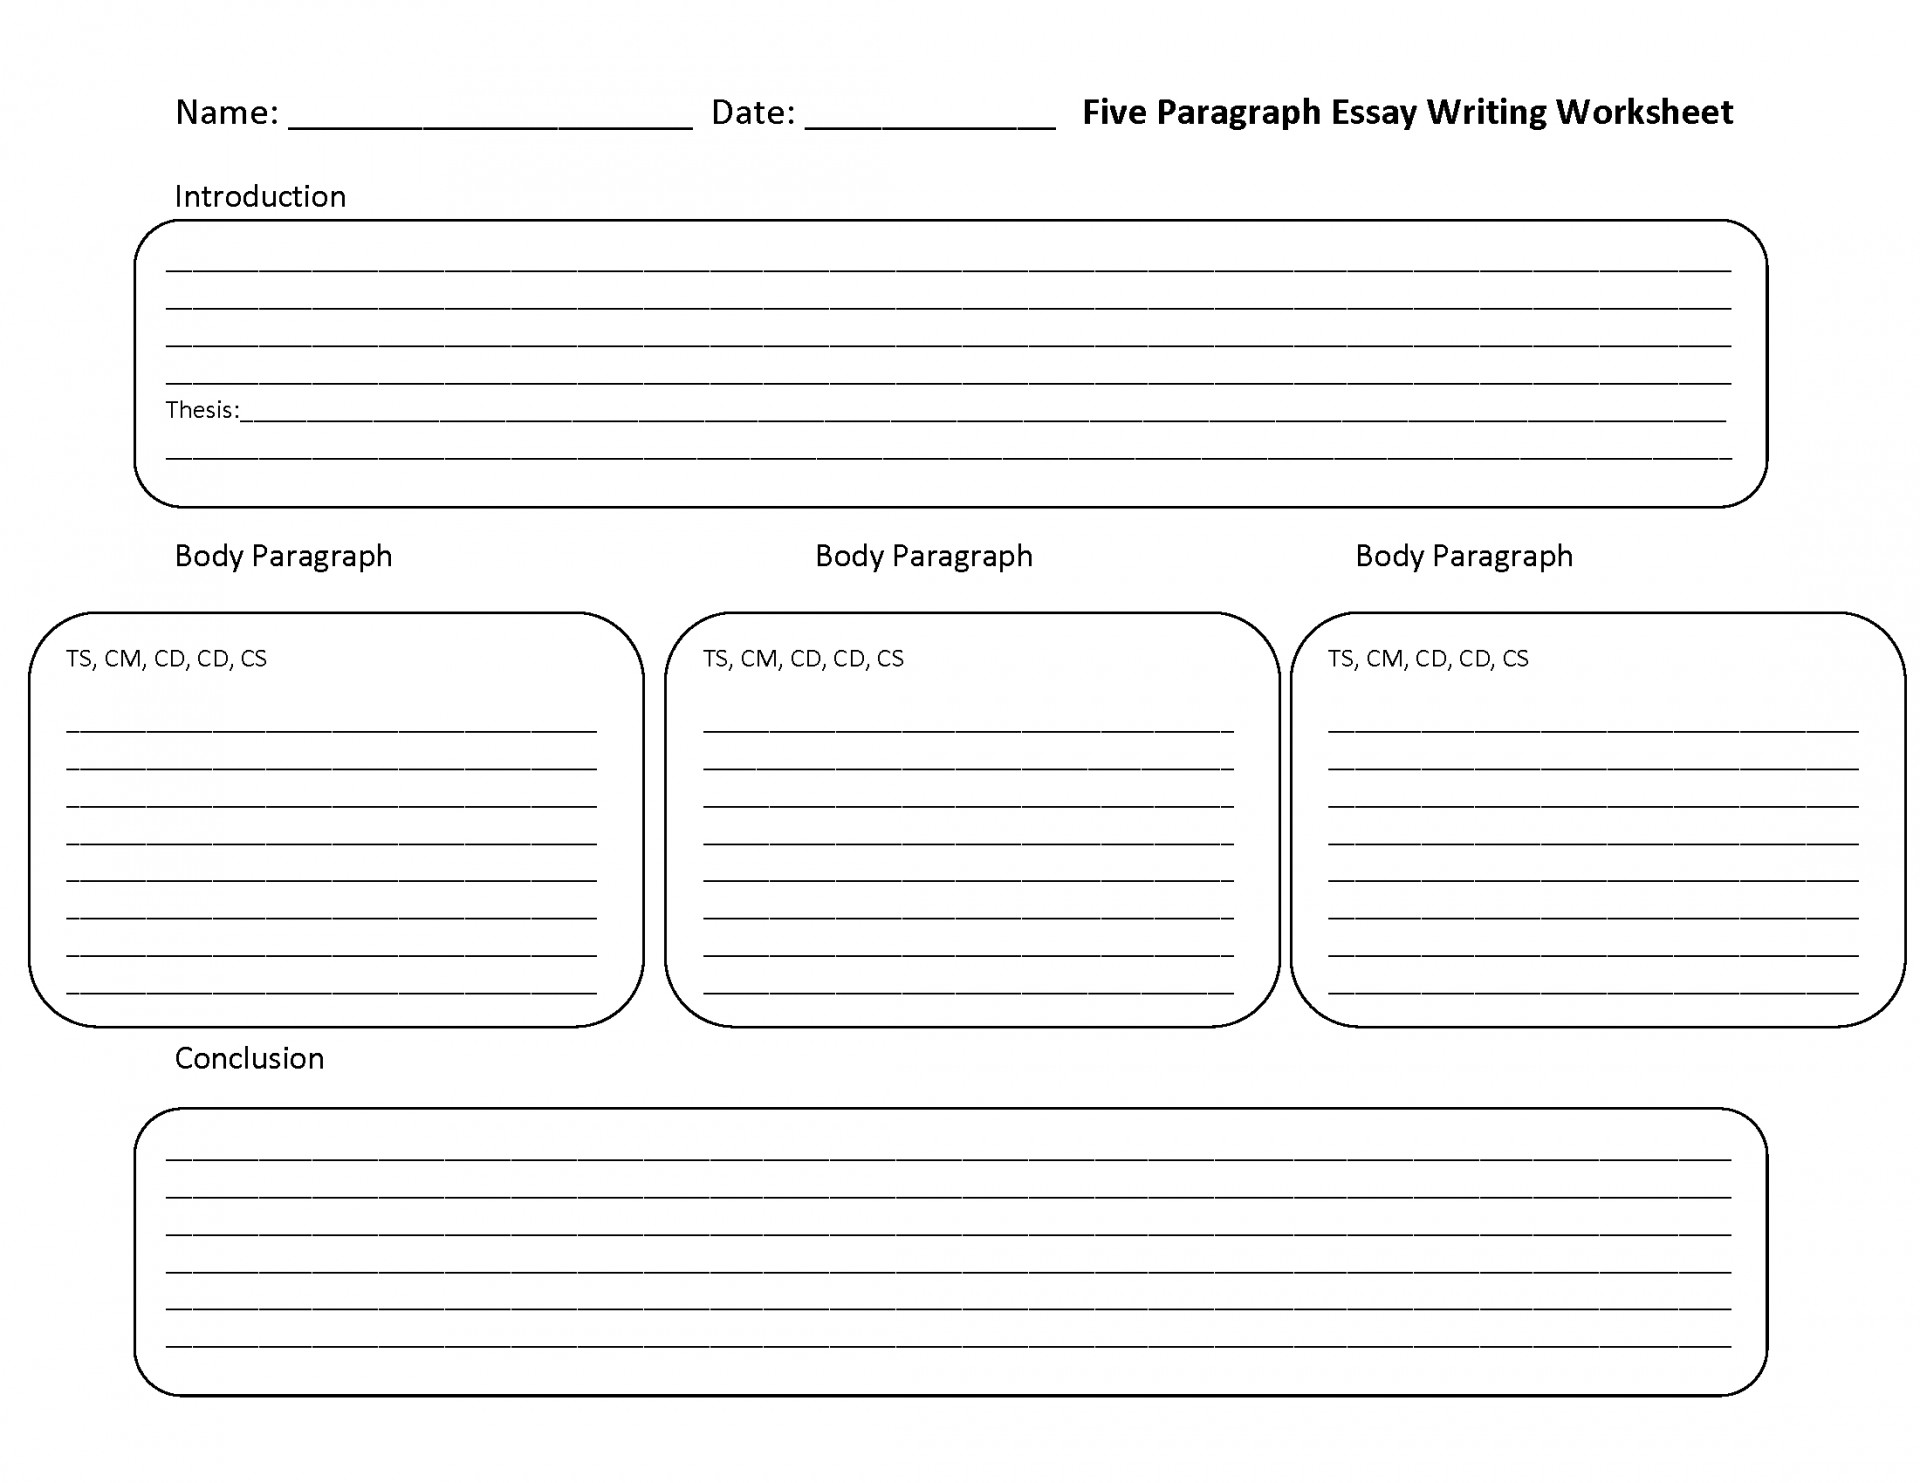 006 Essay Graphic Organizer Paragraph Poemsrom Co For Writing Literary Essays Worksheets Throughout Organizers College Informative Free Persuasive Best Descriptive Incredible Narrative Pdf Middle School 5th Grade 1920